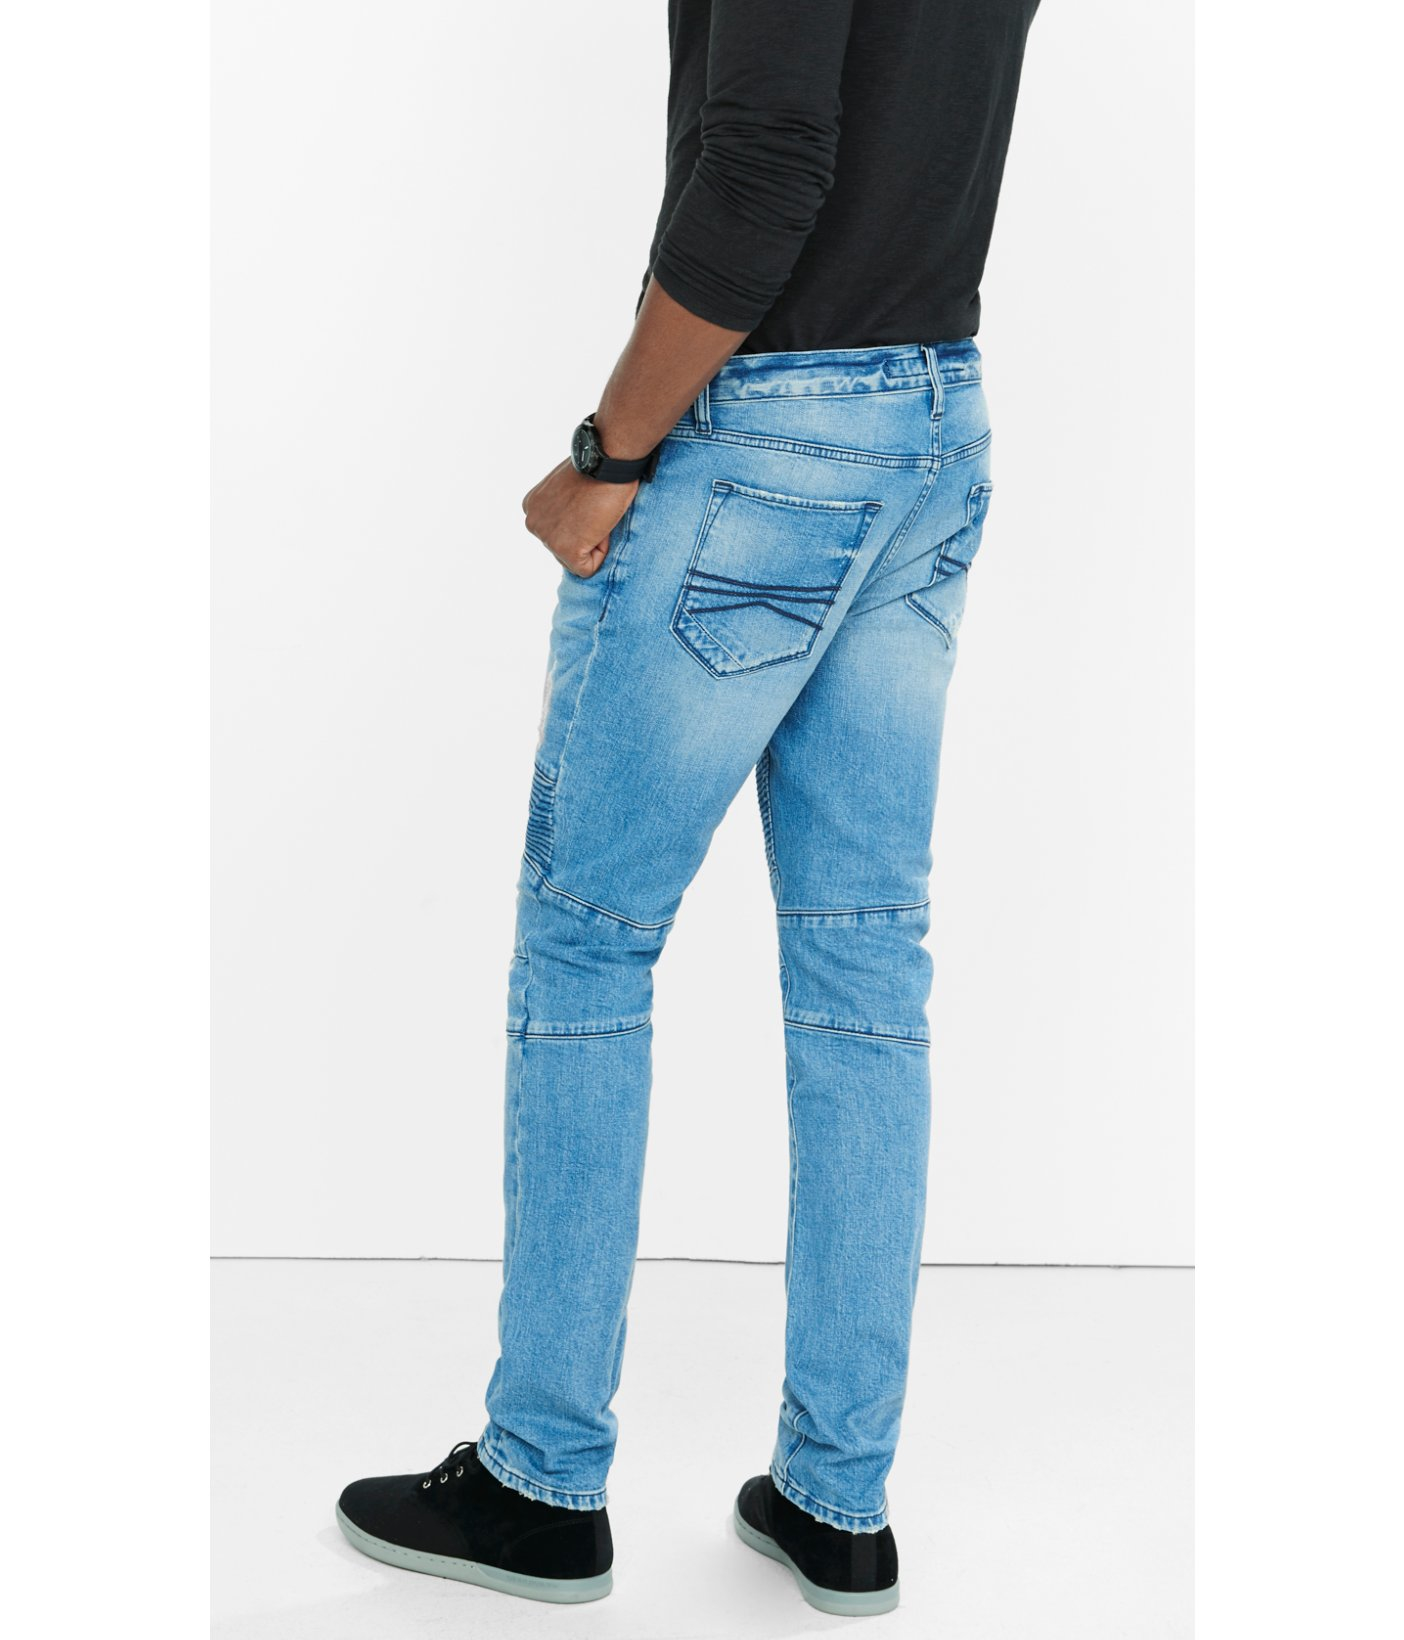 Express Jeans For Women - Most Popular Jeans 2017